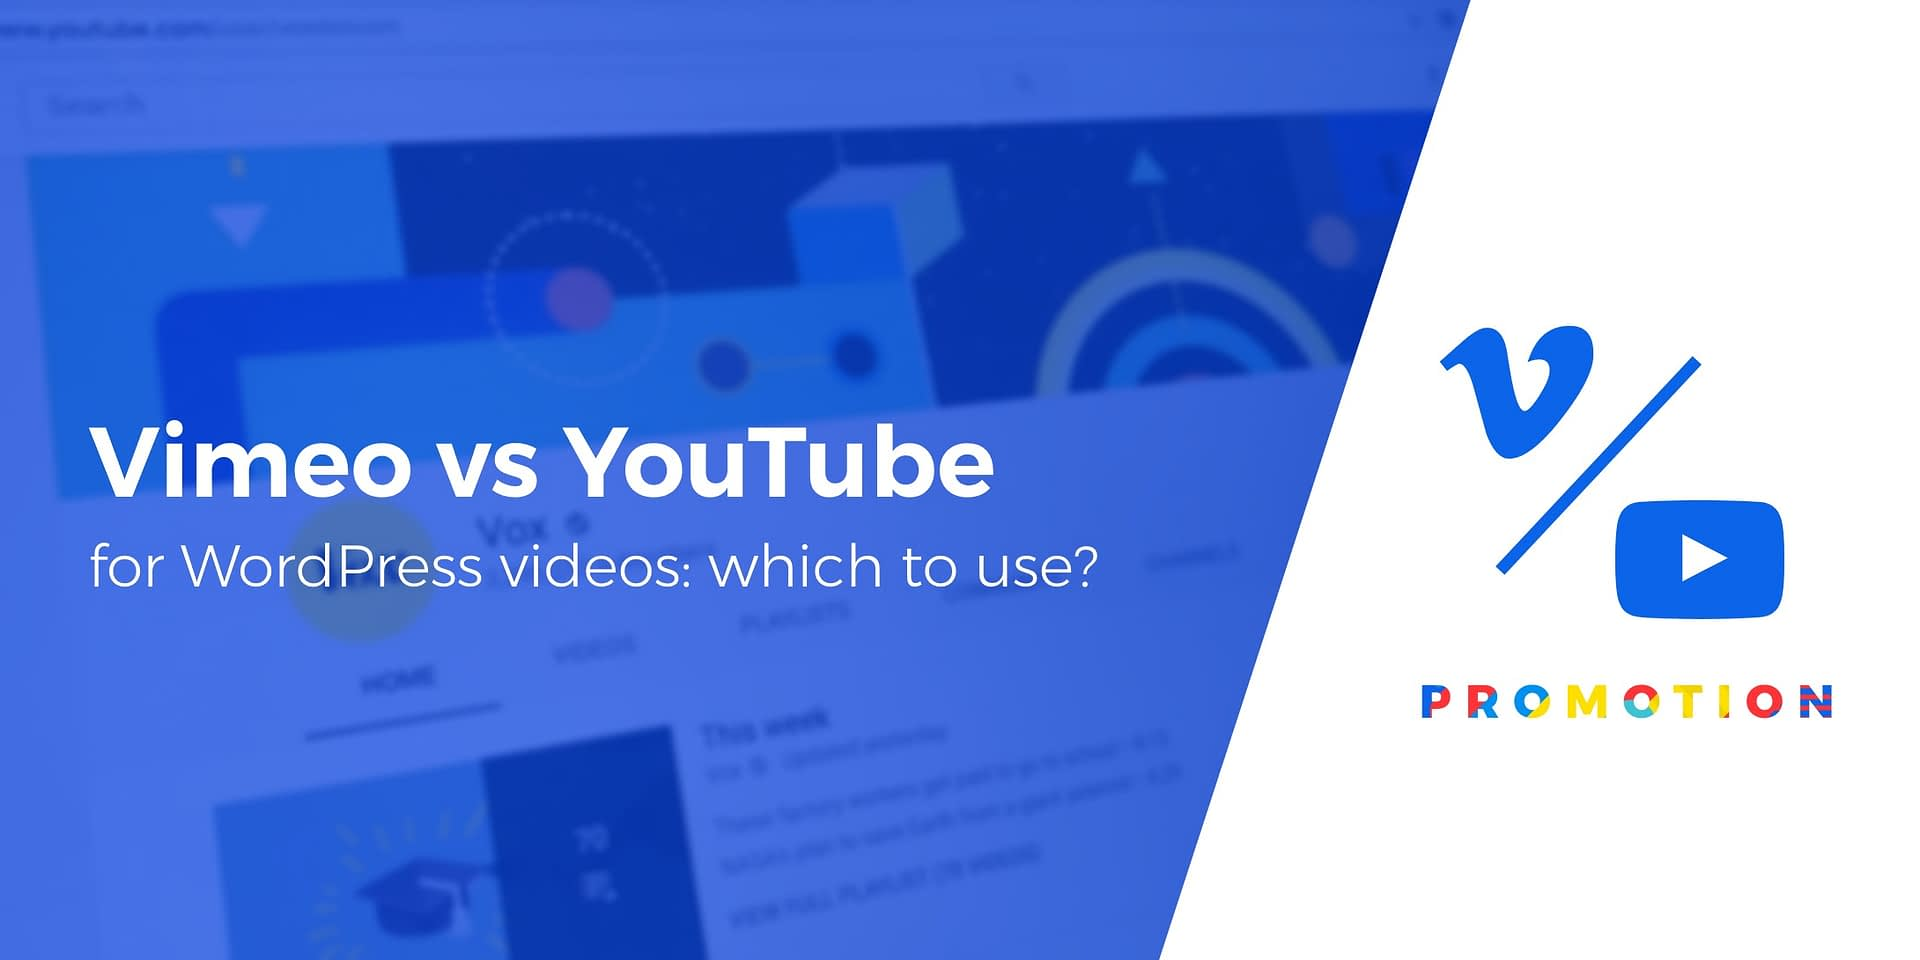 Vimeo vs YouTube for WordPress Videos: Which Should You Use?